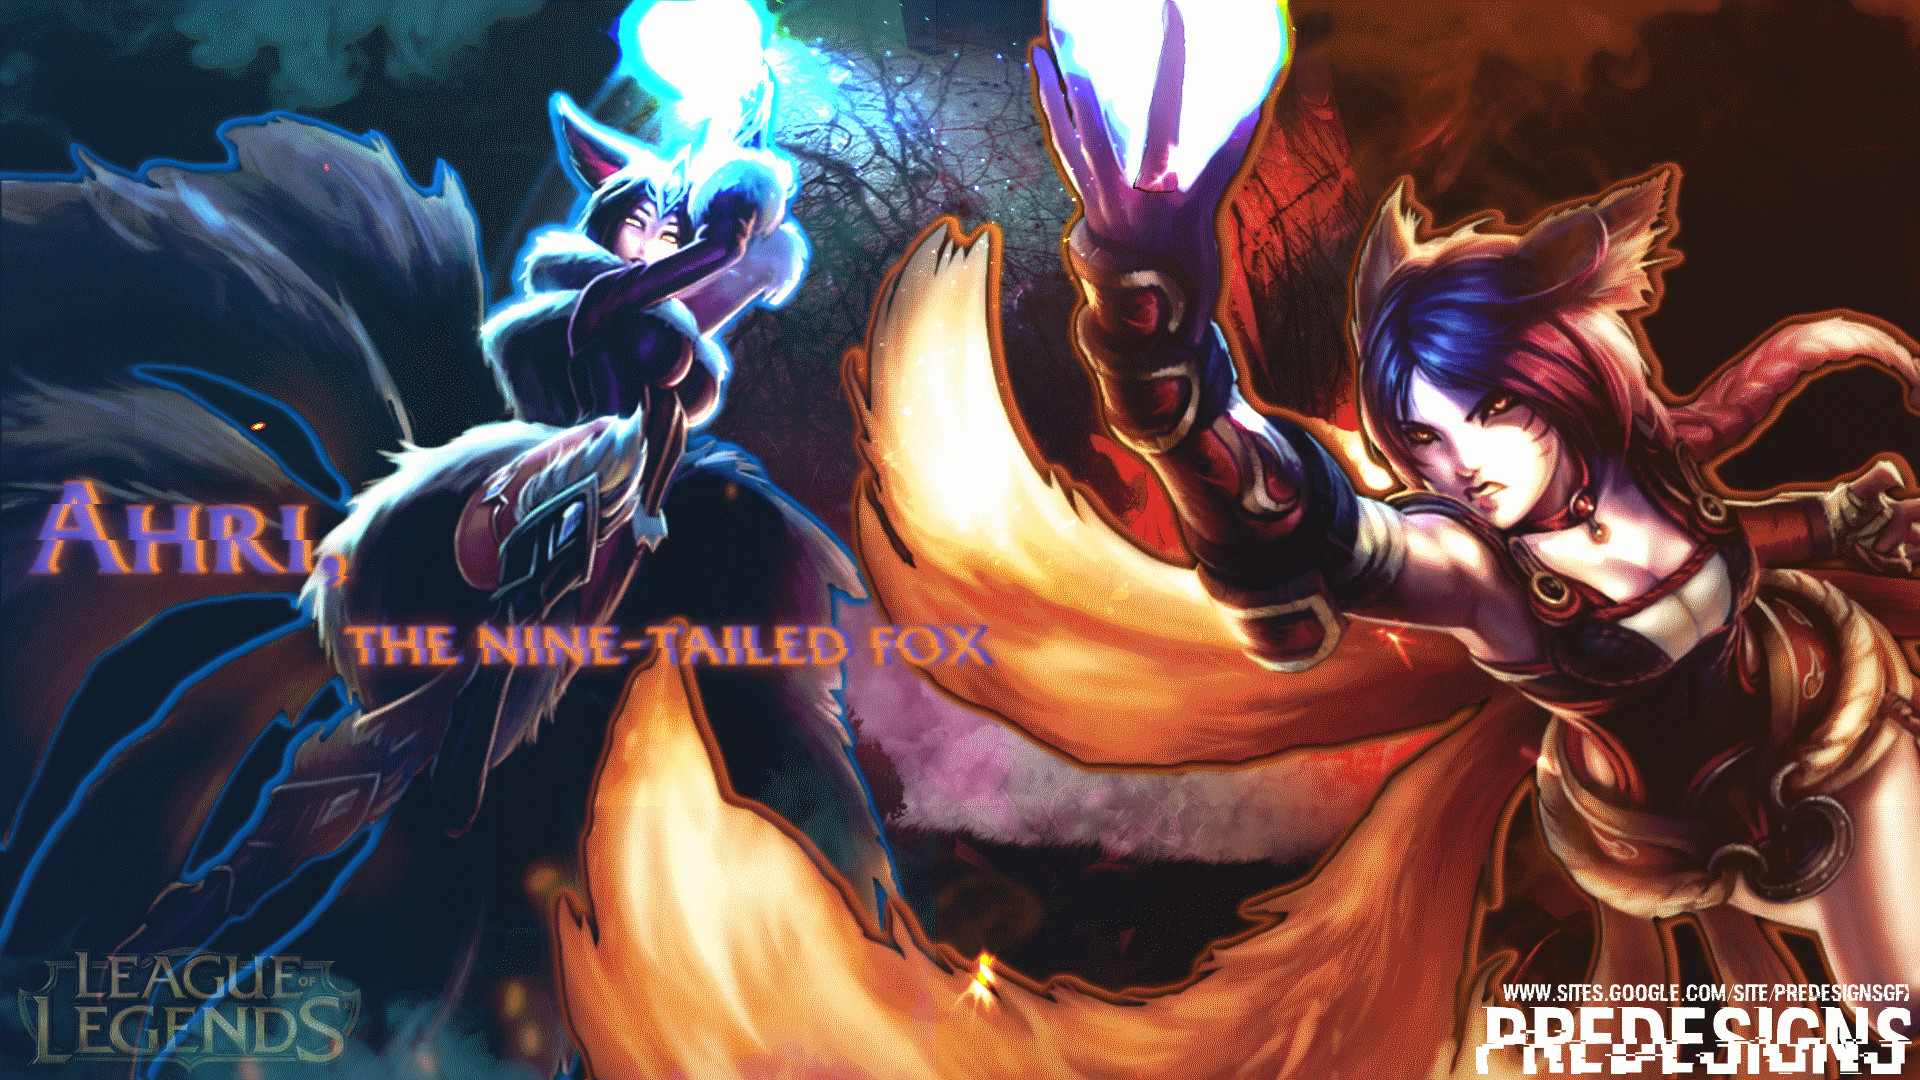 1920x1080 ... Of Legends) Ahri, the Nine-Tailed Fox EDIT by Predesigns